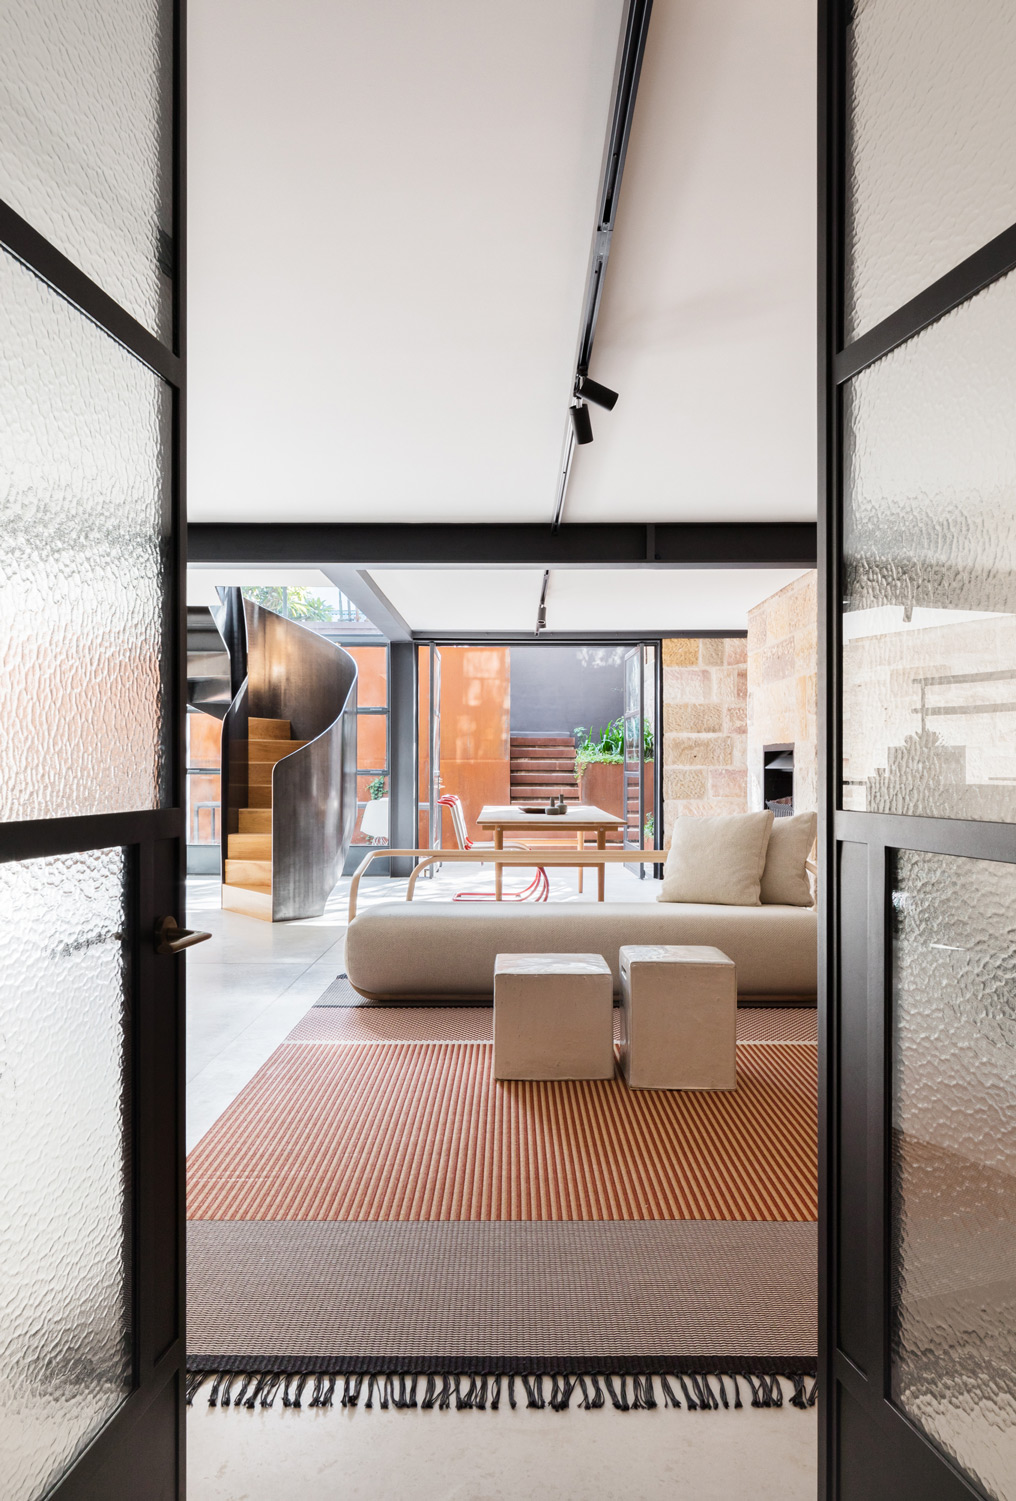 It Enables The Room To Be Read As A Singular Simple Space Allowing The Sandstone Perimeter Walls To Define The Overall Space